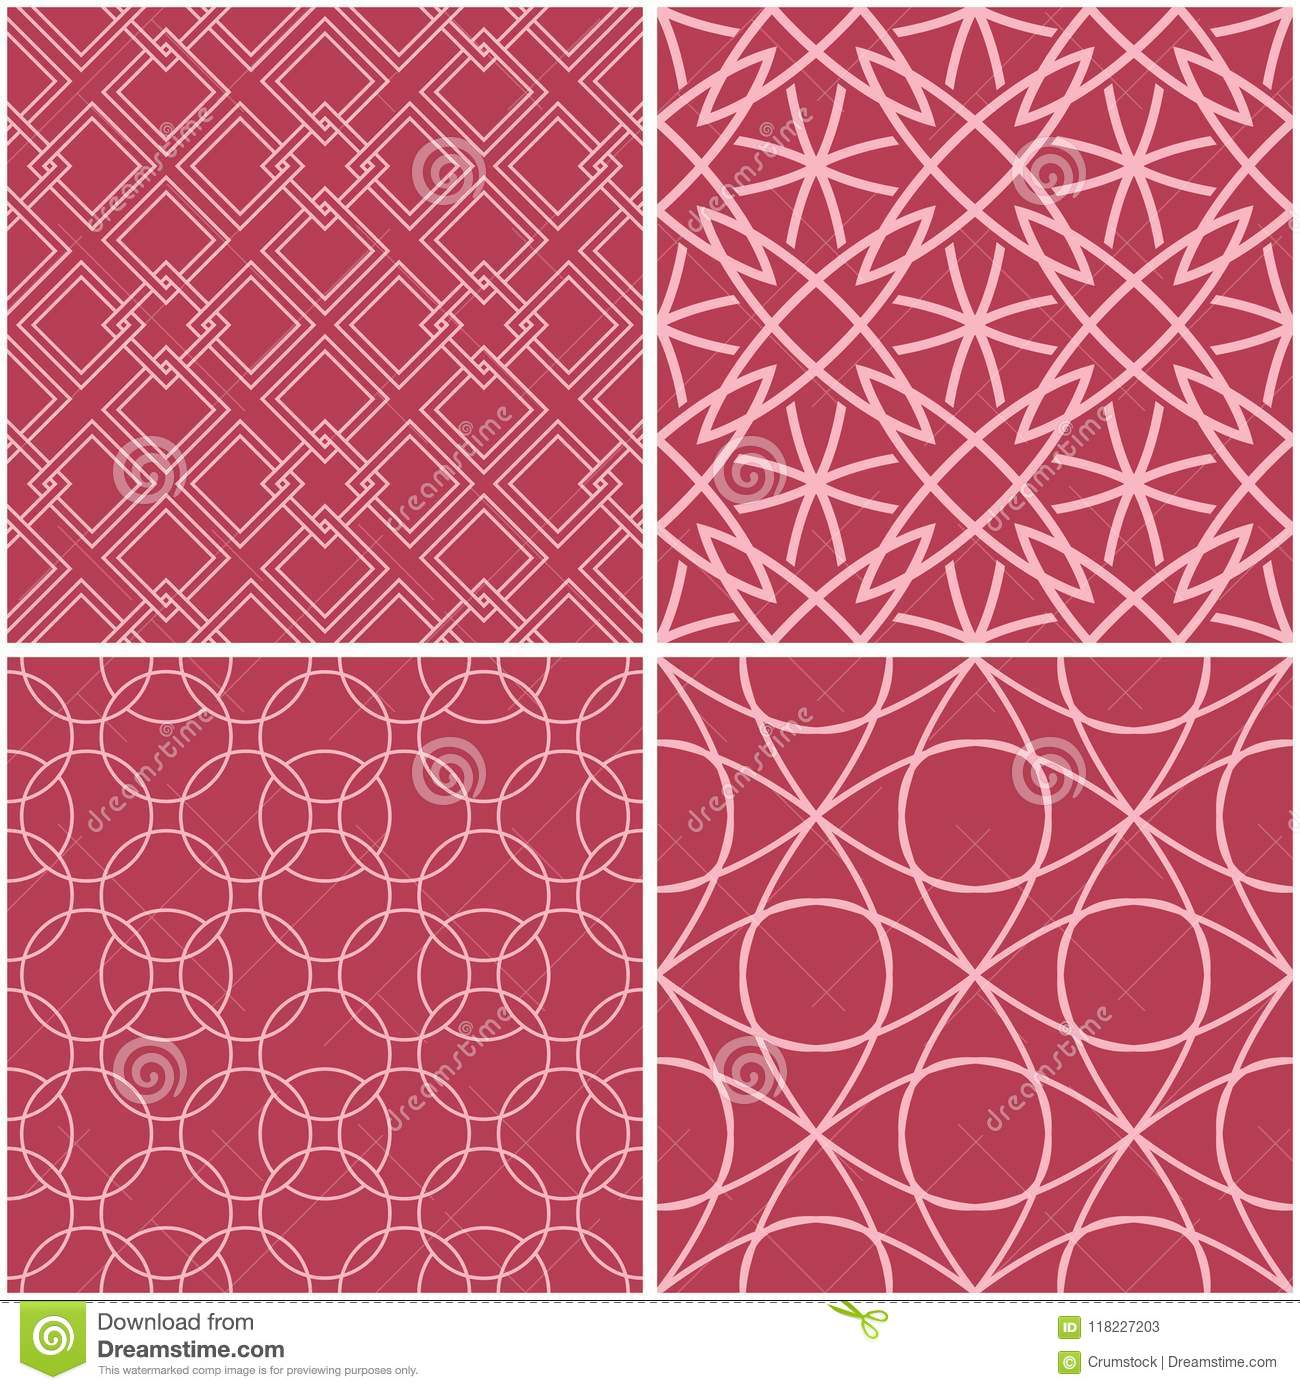 Geometric patterns. Set of pale red seamless backgrounds